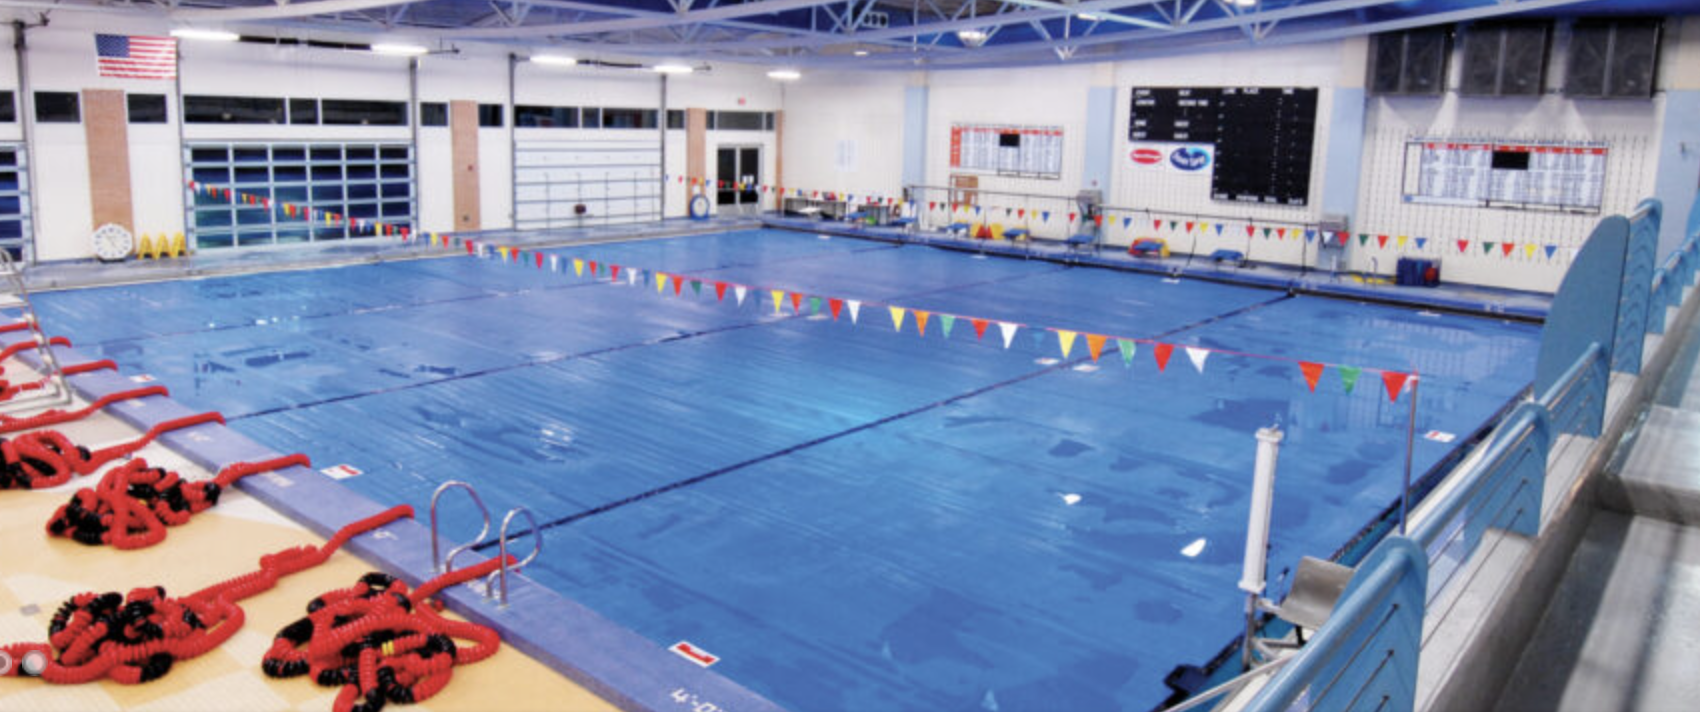 spectrum pool cover, indoor pool cover, indoor pool cover and energy savings, pool cover evaporation